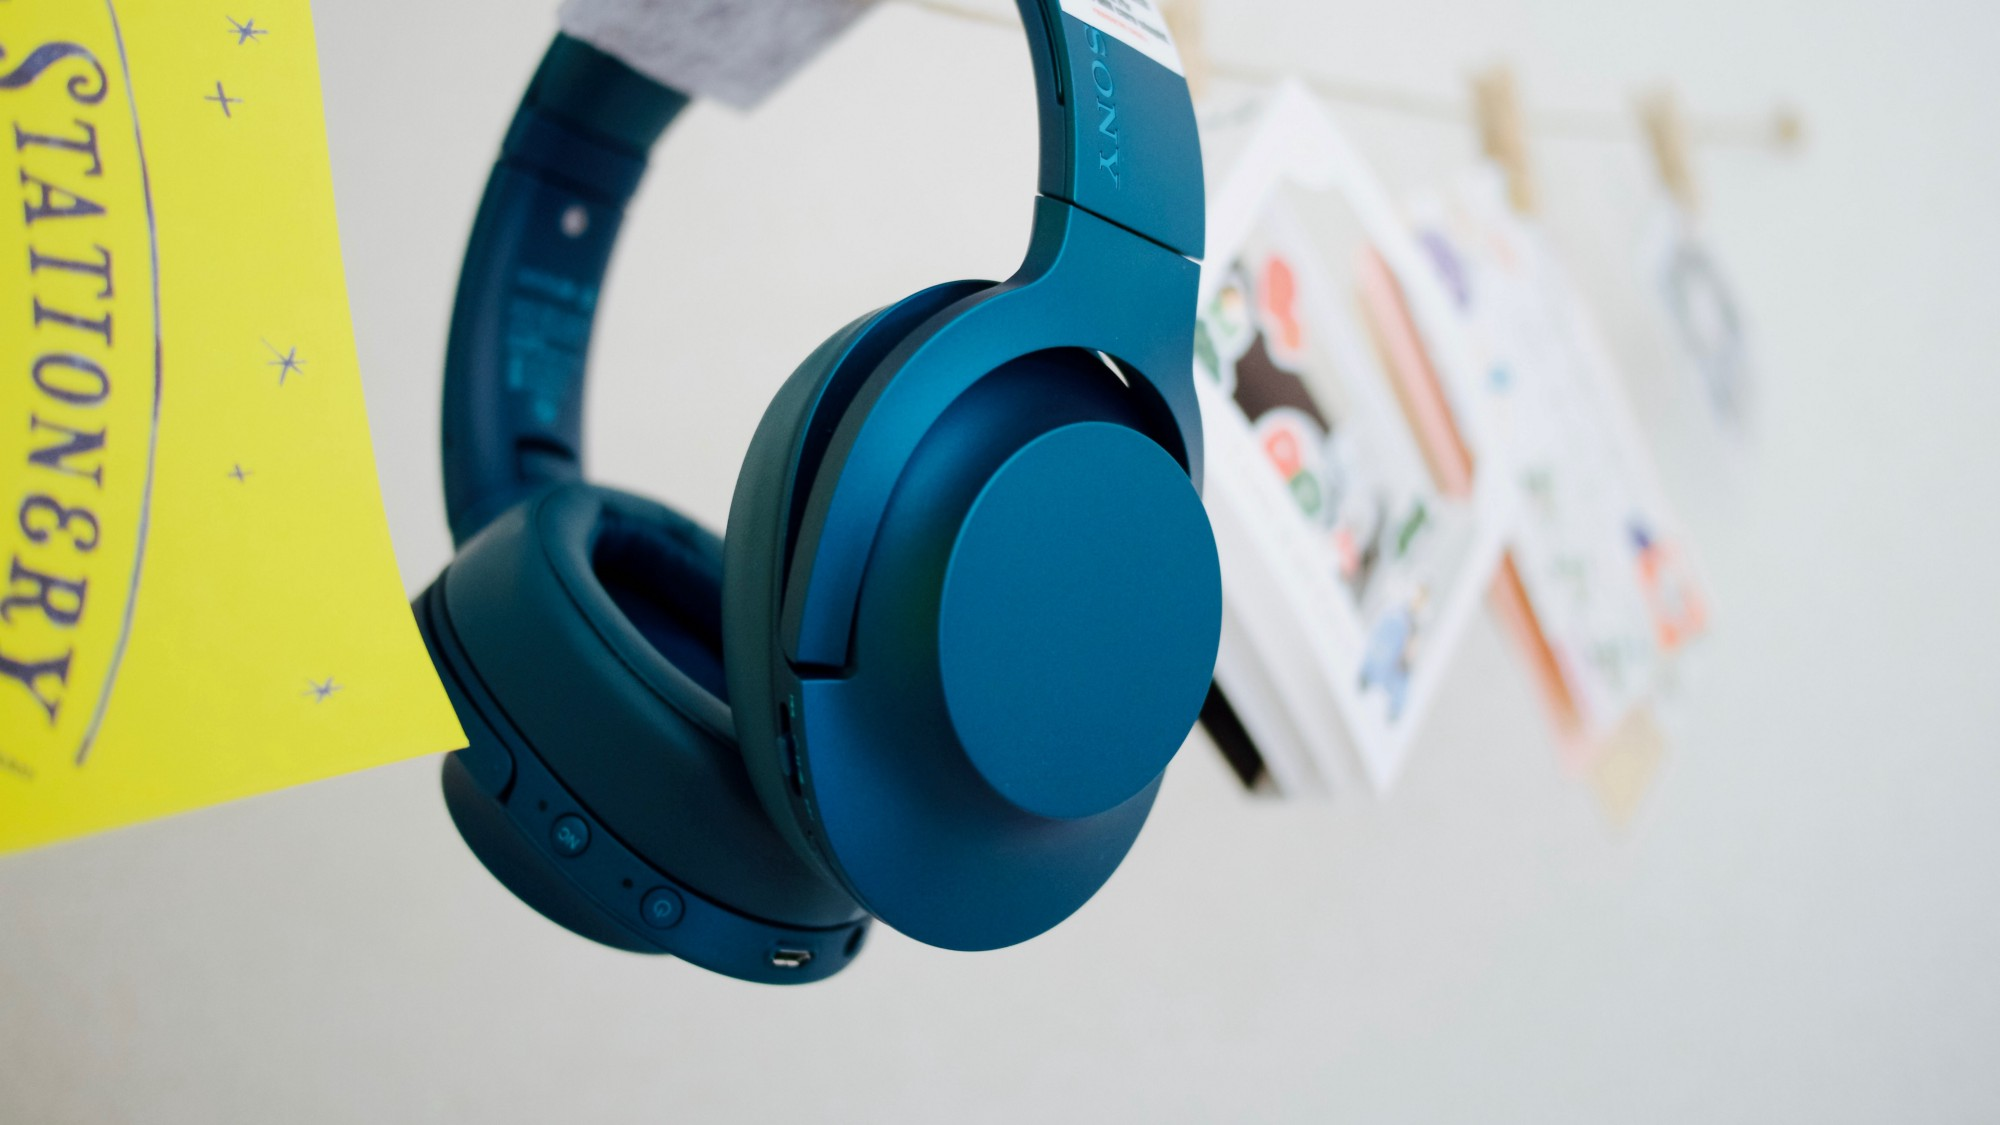 Sony Hear On Wireless Nc A Review Timmy Yong Medium Headphone Mdr100abn Bluetooth Noise Cancelling In Todays Era Of Headphones Youve Probably Heard The Bose Qc35 And Mdr 1000x These Are At Top